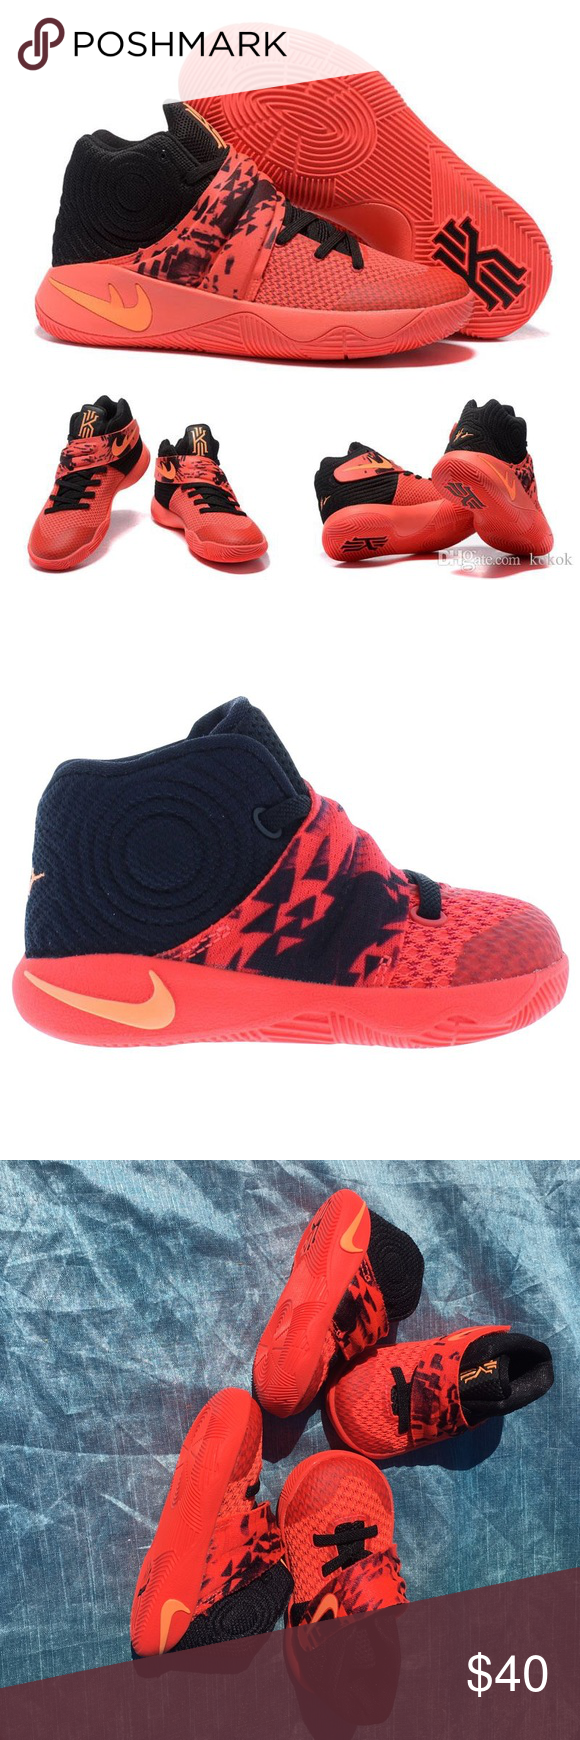 Nike baby shoes!!❤️ Nike kyrie Irving